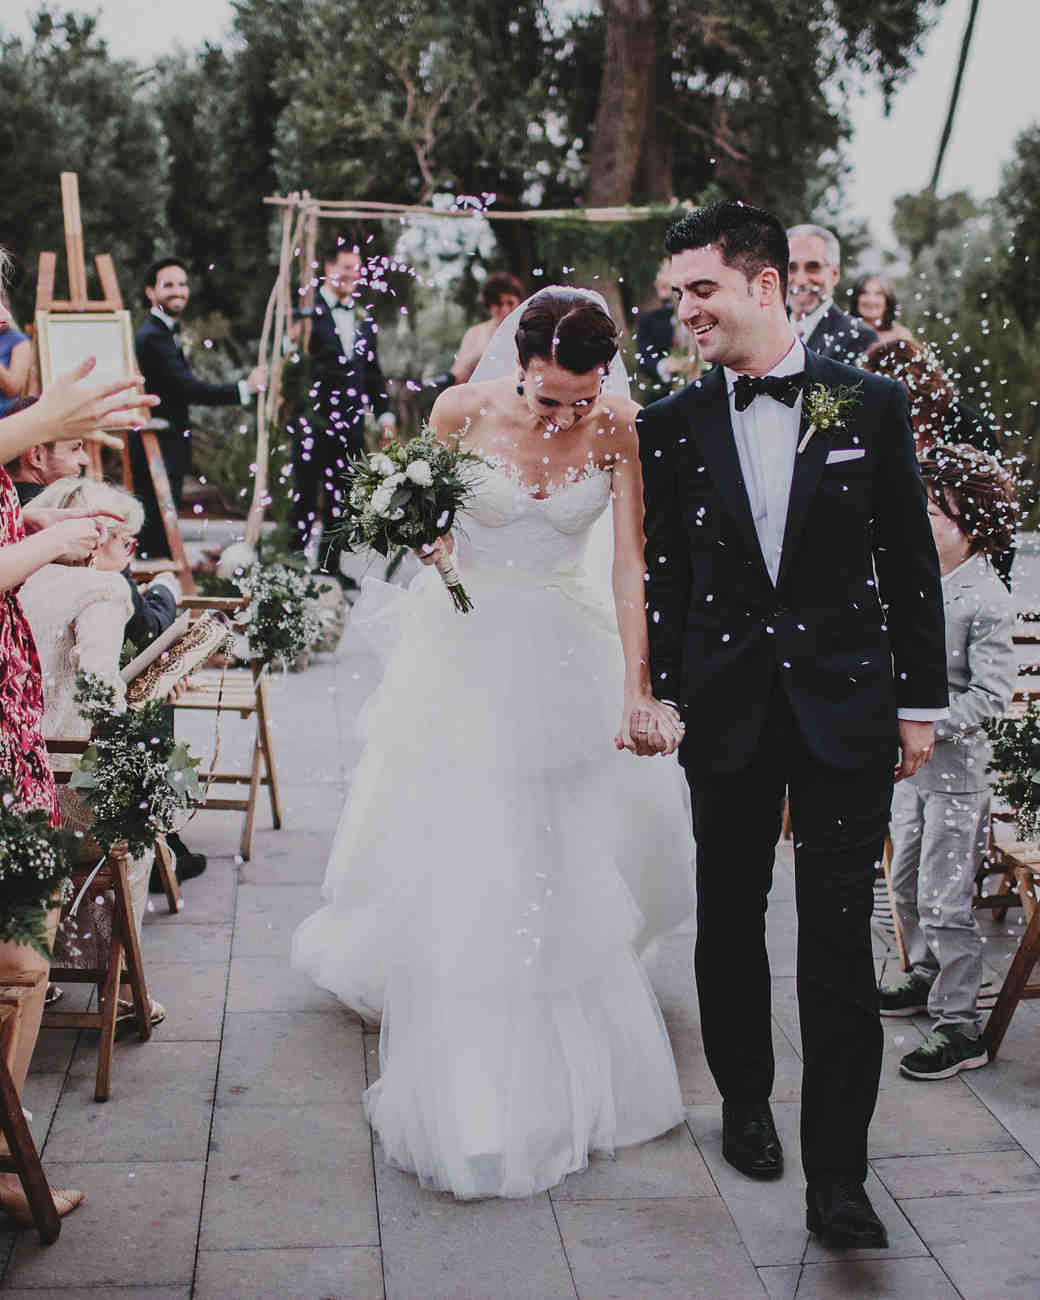 Weddings Pictures Gallery: An Amazing Spanish-American Wedding In The Canary Islands